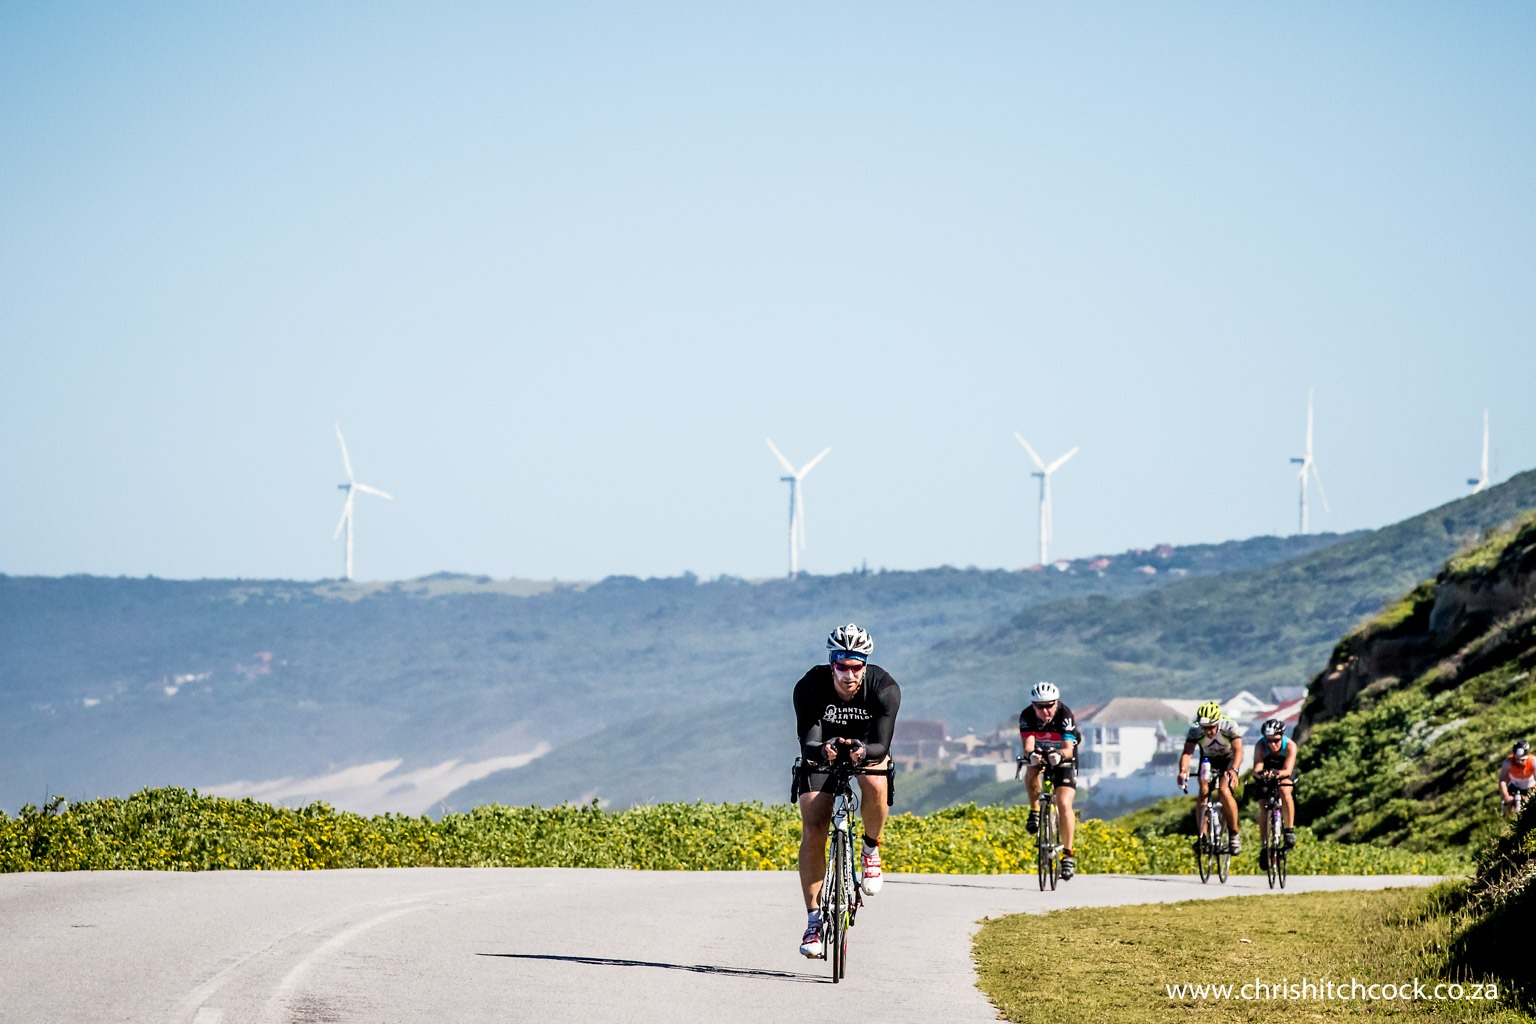 The wind generators in the background are there because there are always winds along this coast. This is where riders start to feel the first bit of hurt on lap one of the cycle. The smiles will be completely gone by lap two.